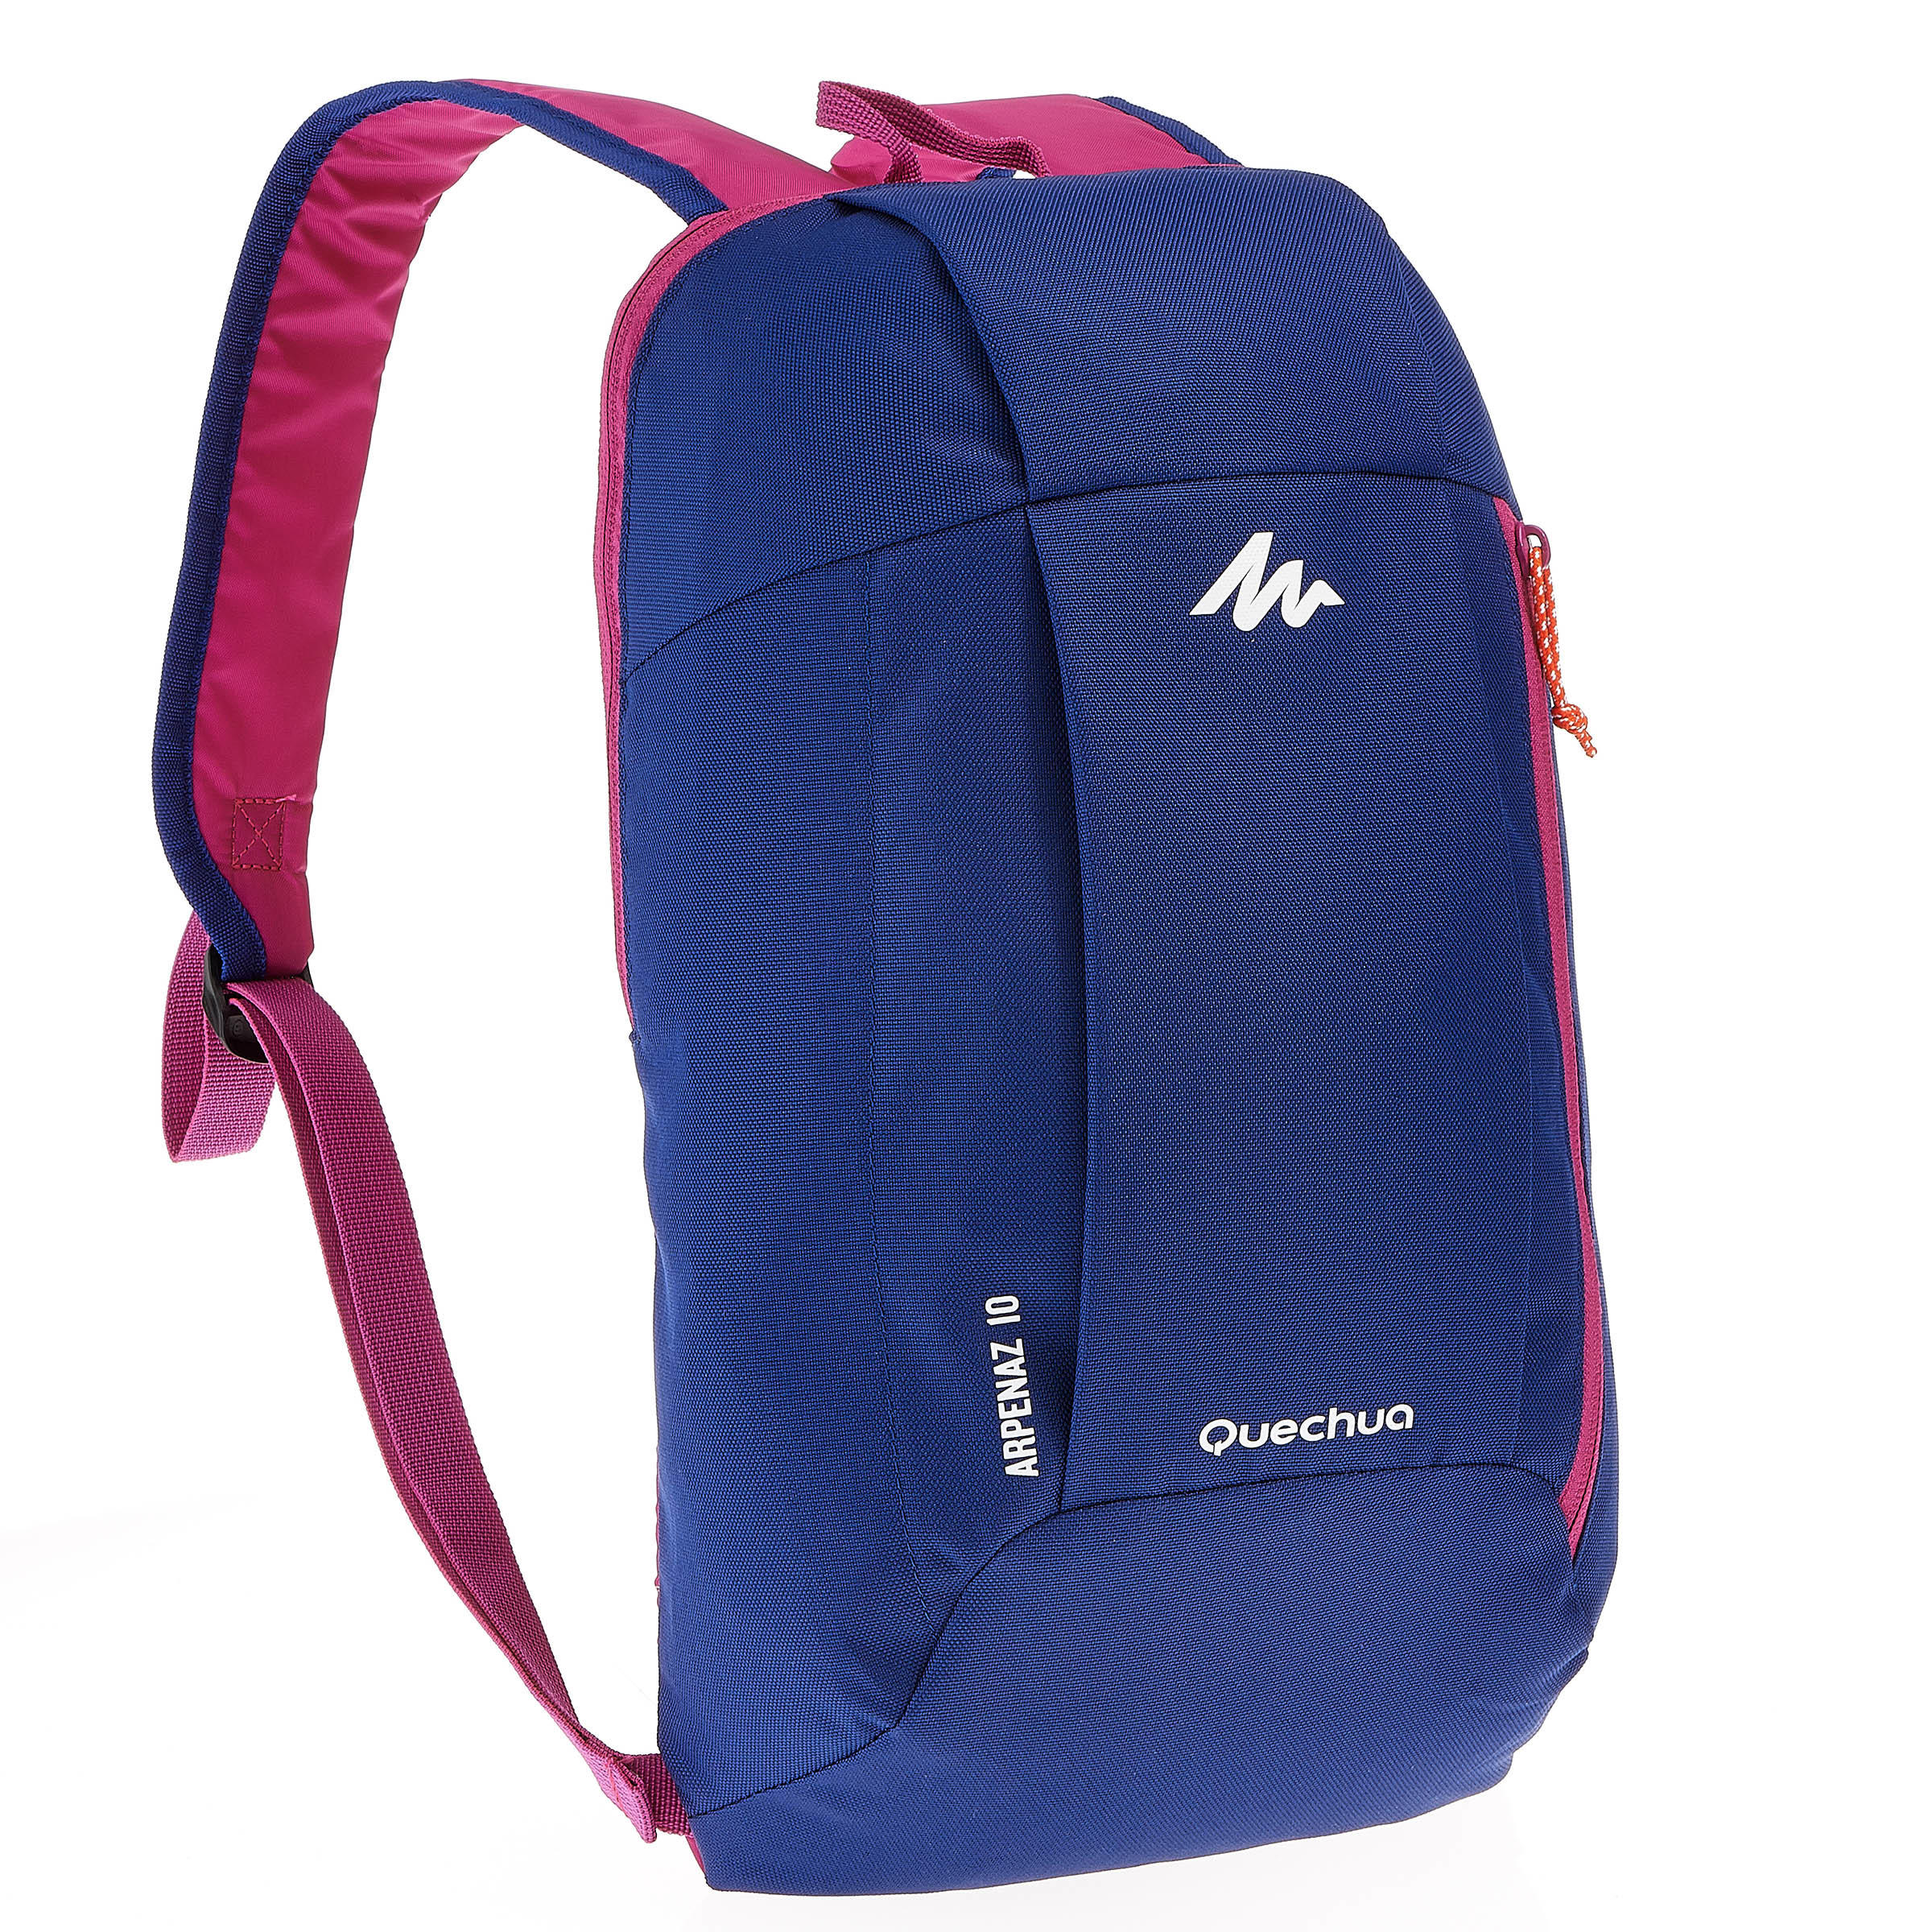 Arpenaz 10 L Day Hiking Backpack - Blue/Purple